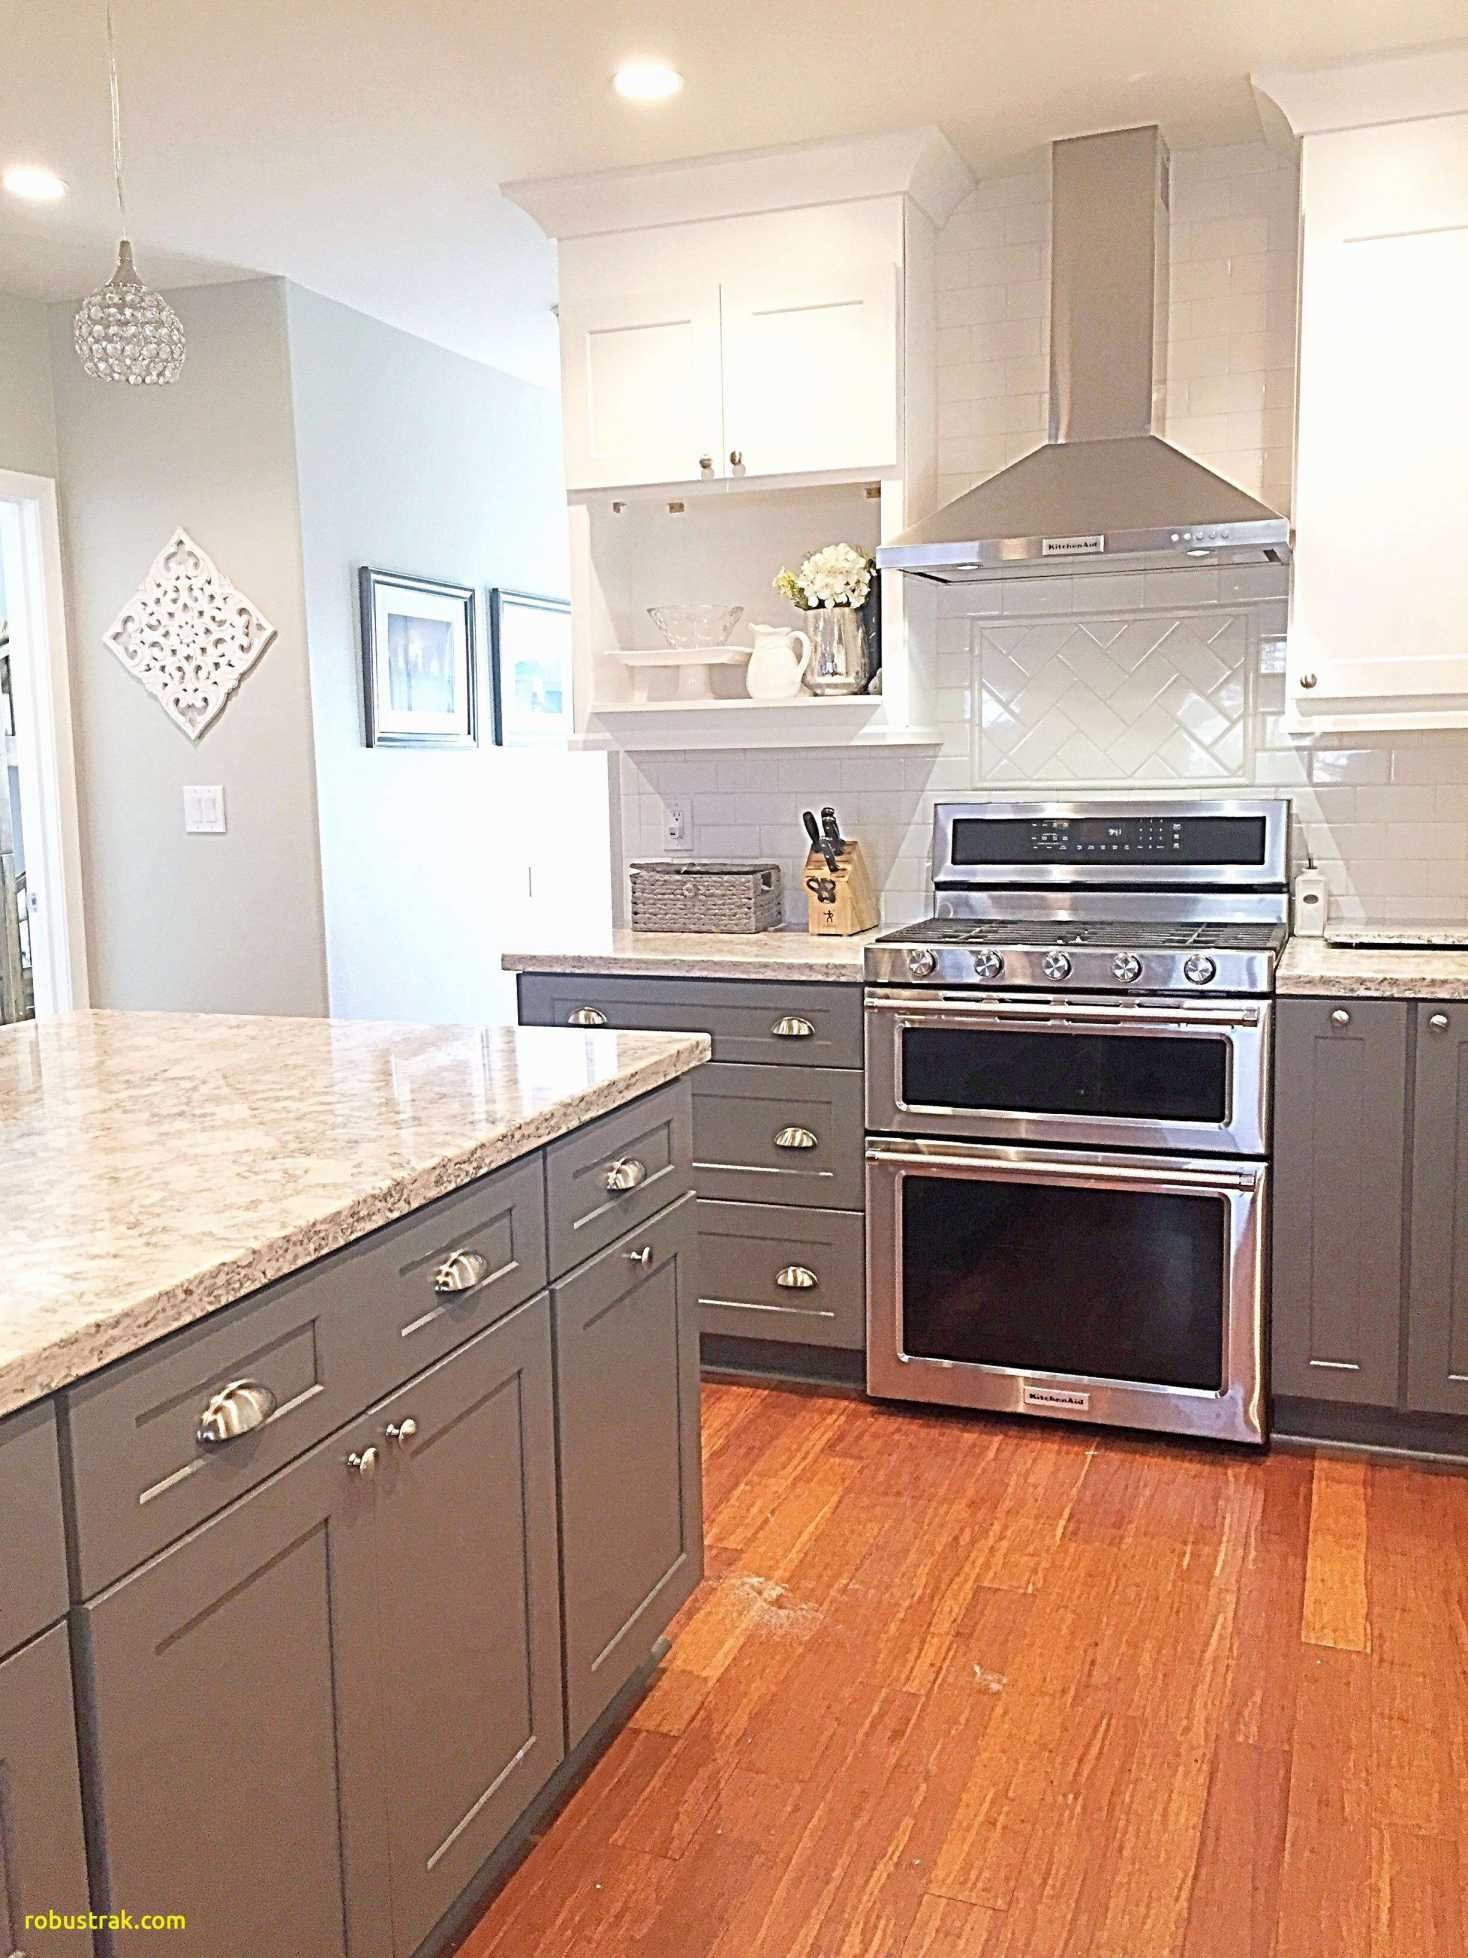 hardwood flooring contractors near me of average cost to build a pergola awesome how much is kitchen cabinet for average cost to build a pergola awesome how much is kitchen cabinet installation lovely kitchen cabinet 0d